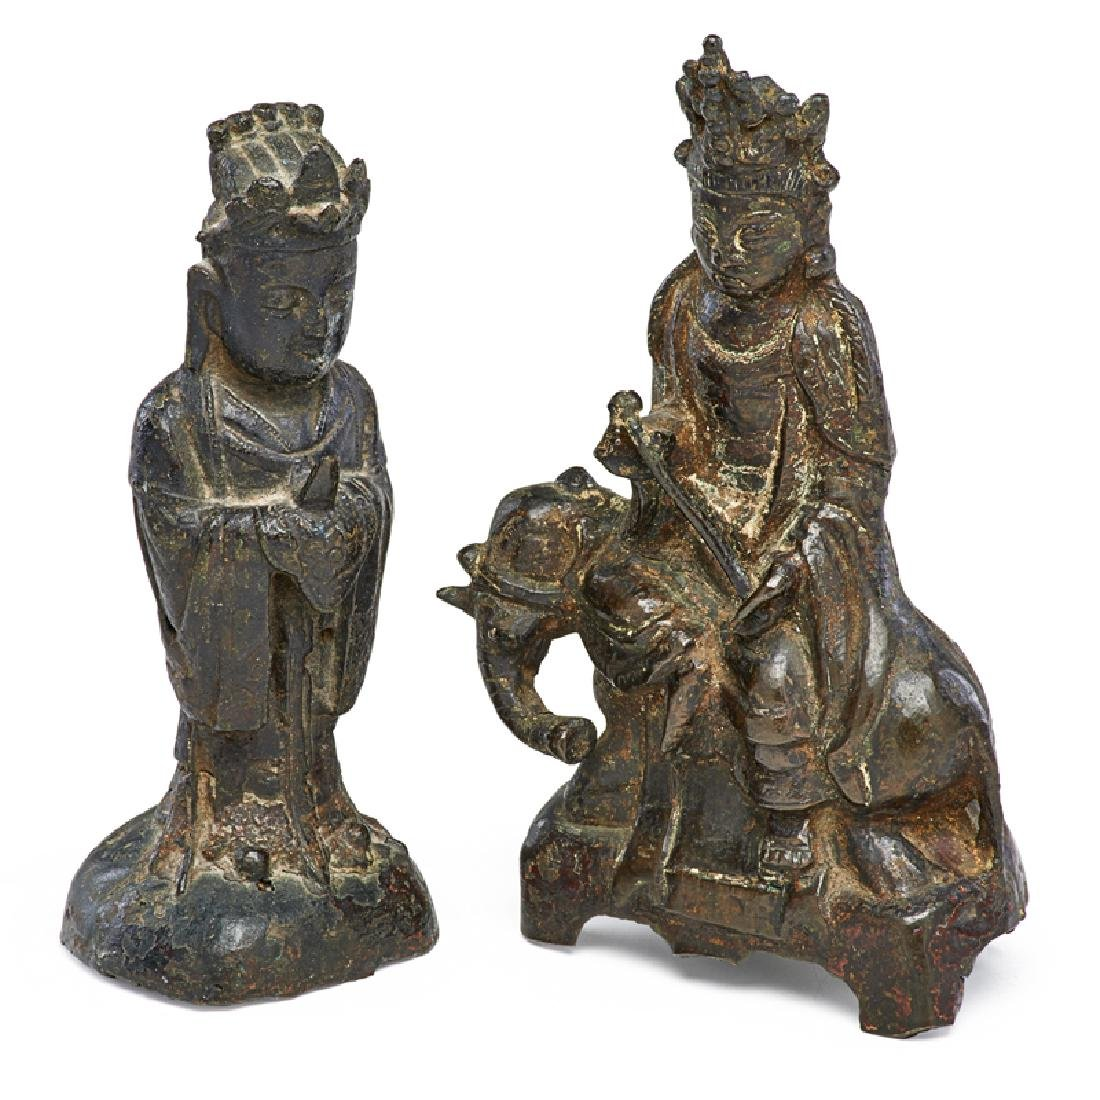 TWO MING-STYLE BRONZES